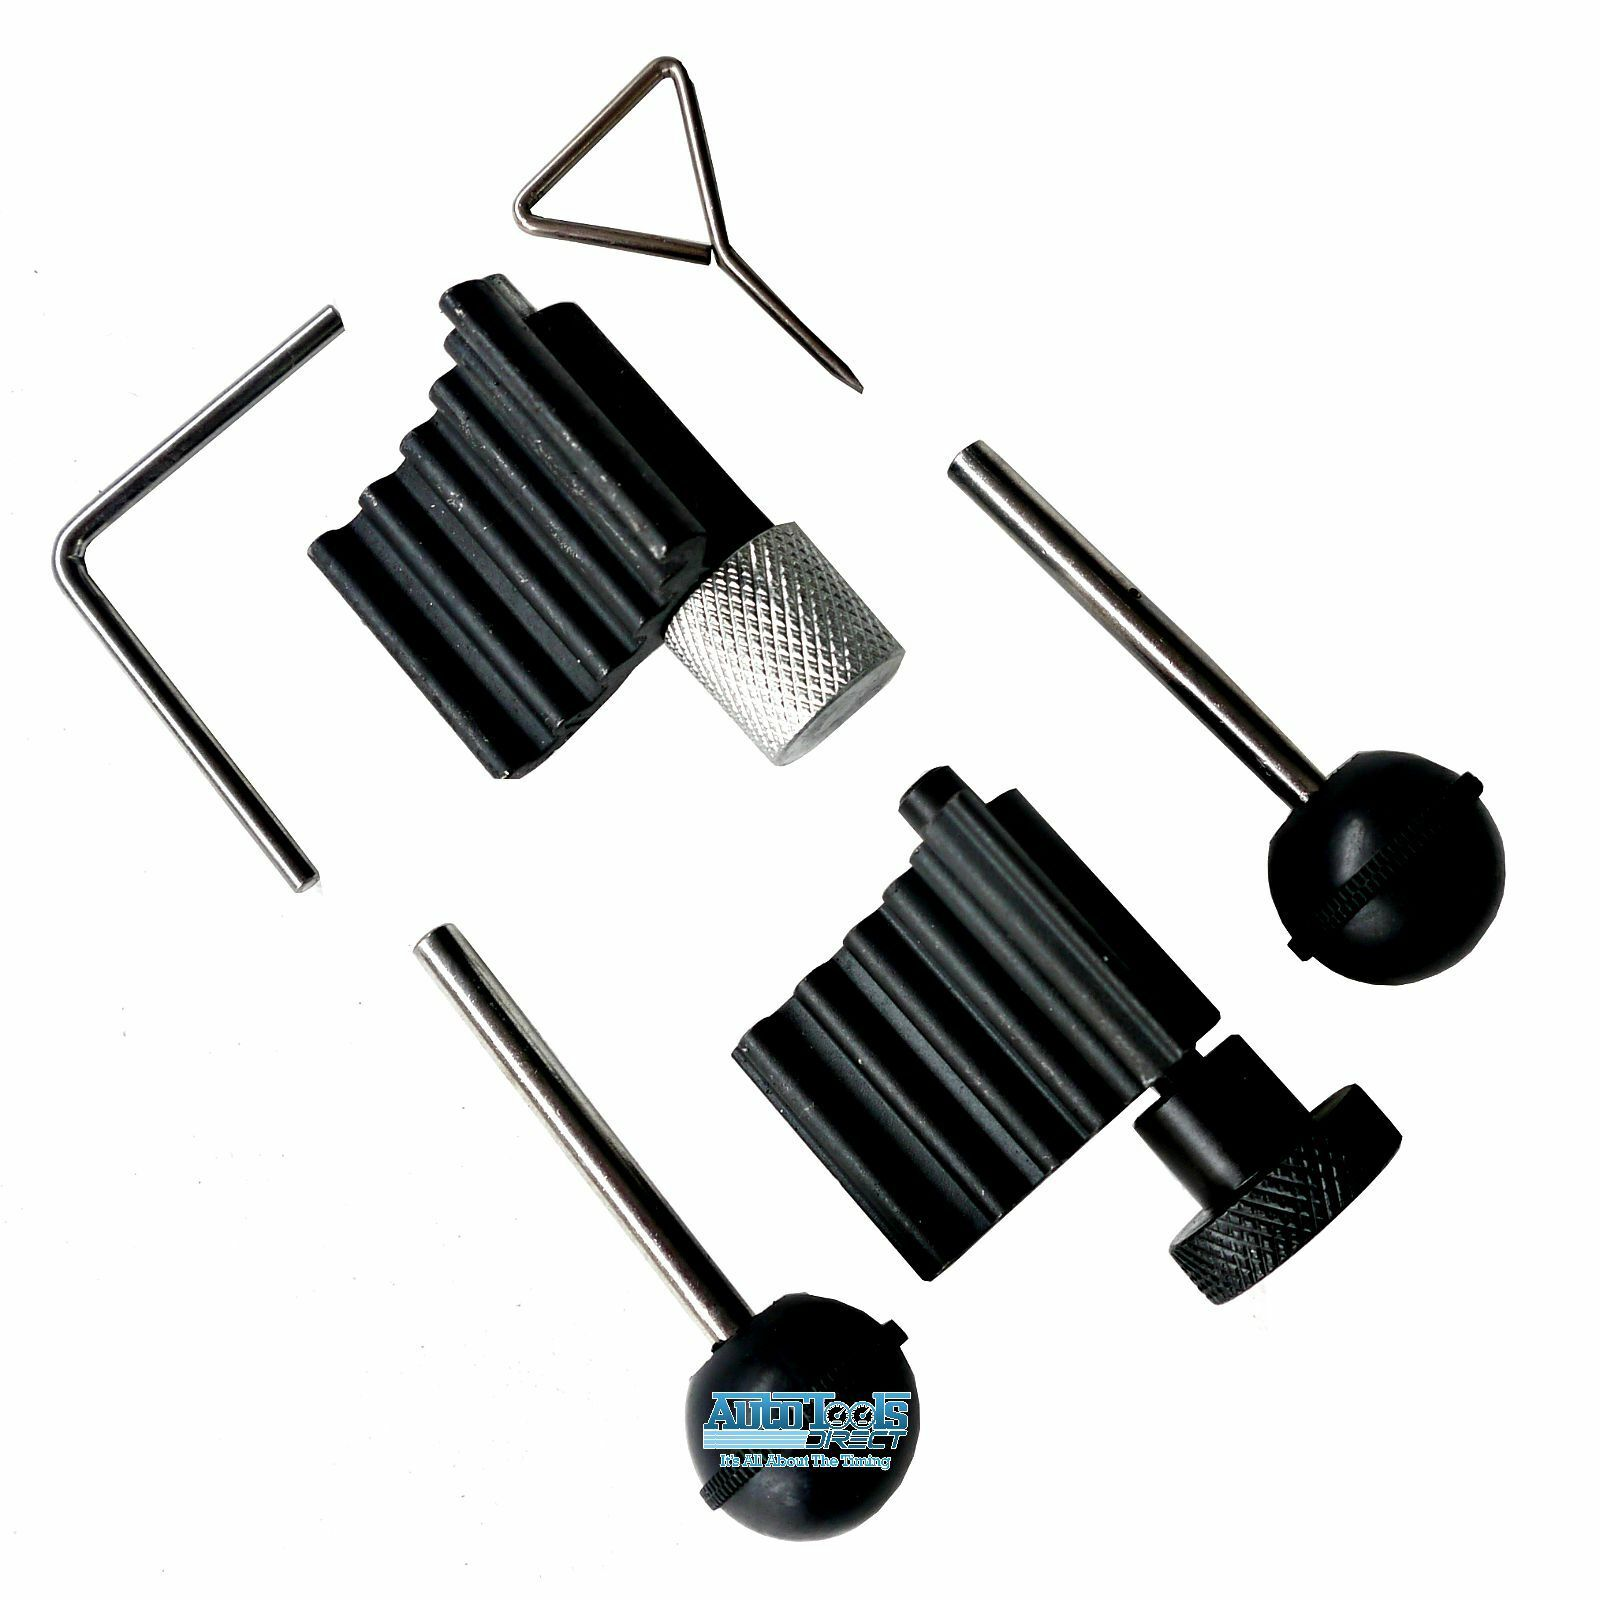 Vw 1600 Engine Removal: VW Timing Tool Kit 1.2 1.4 1.9 2.0 TDi PD AUDI Diesel